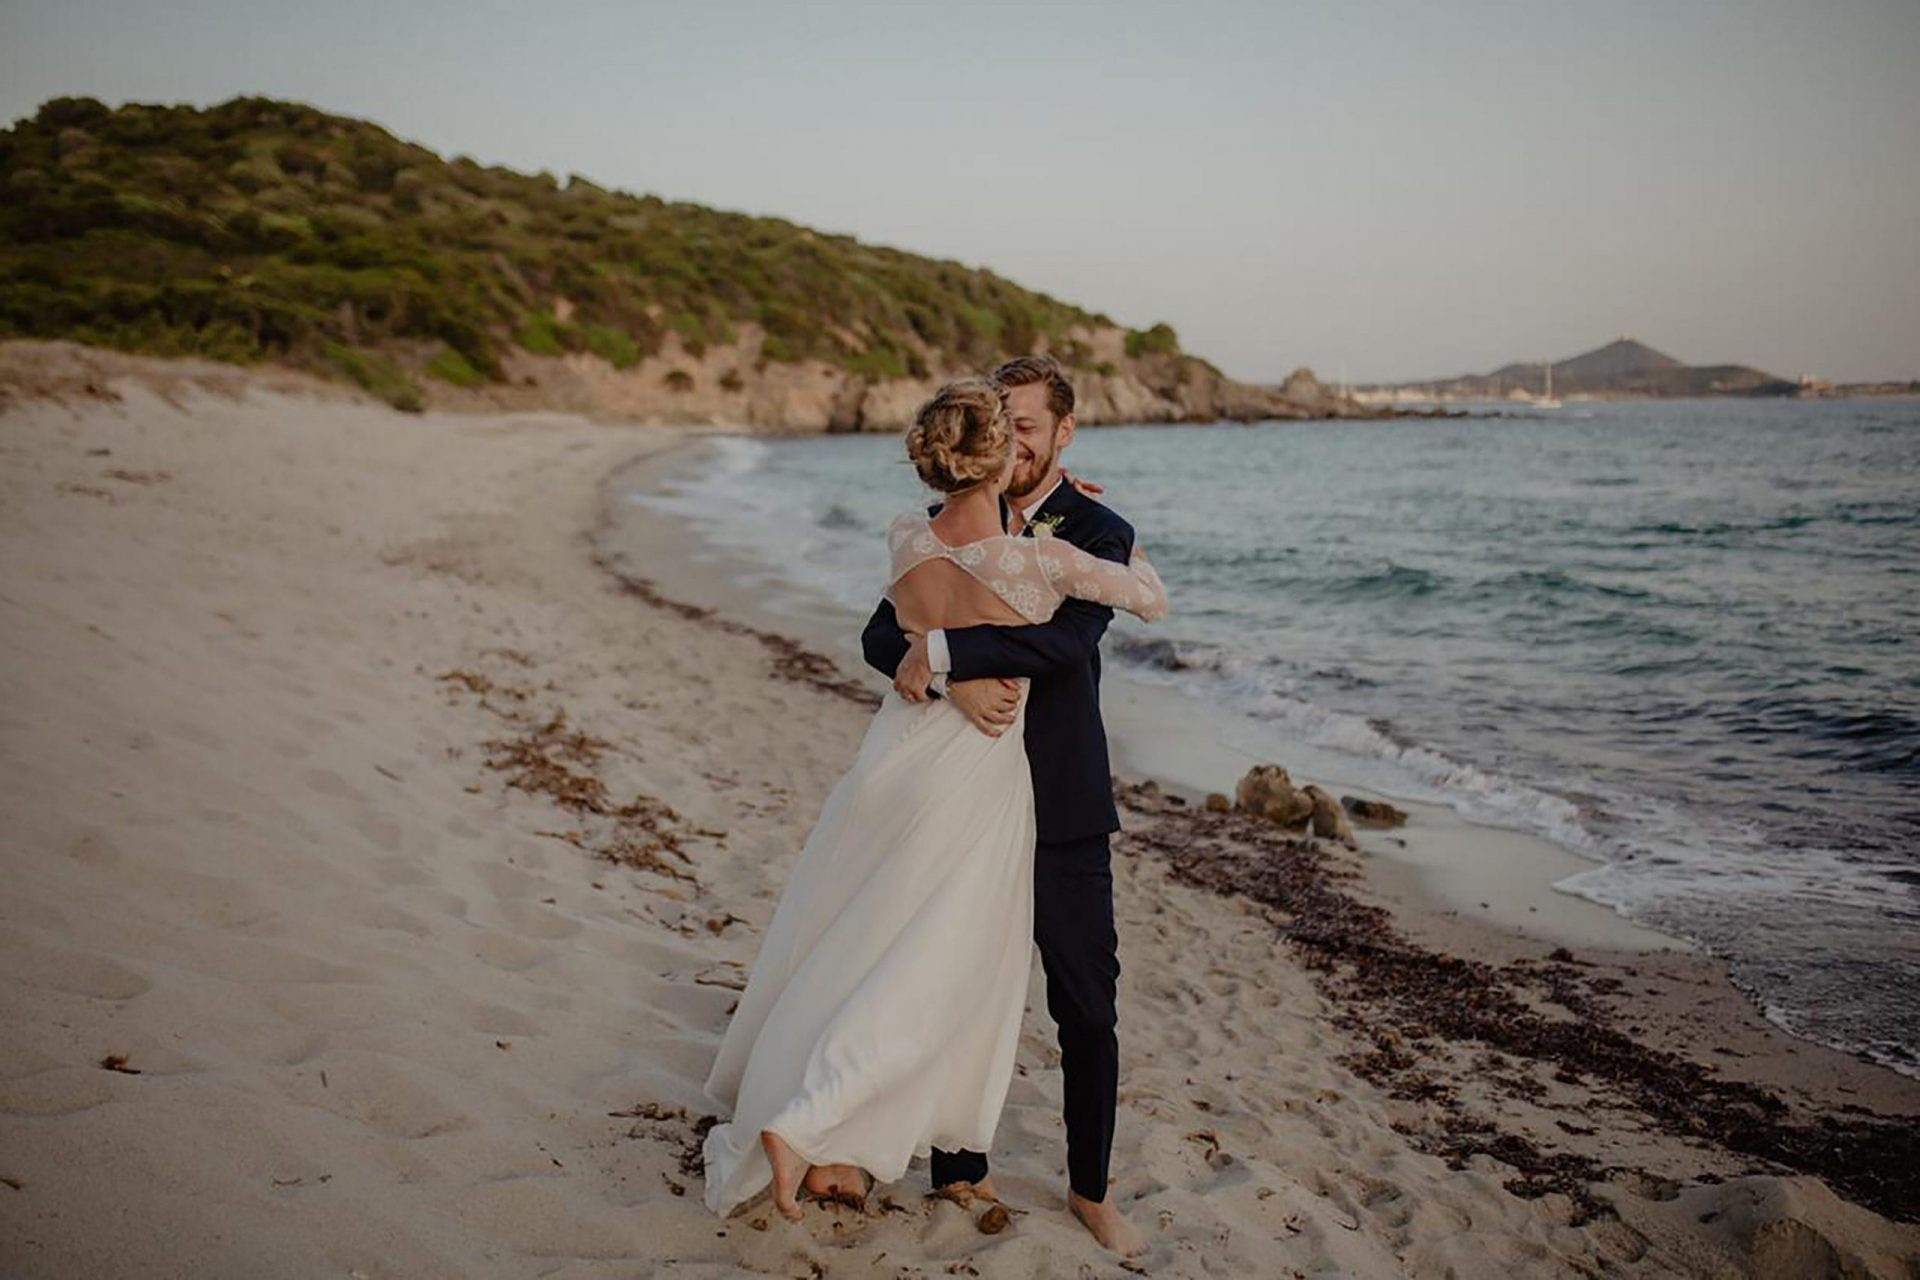 Luca and Delphine, on the beach